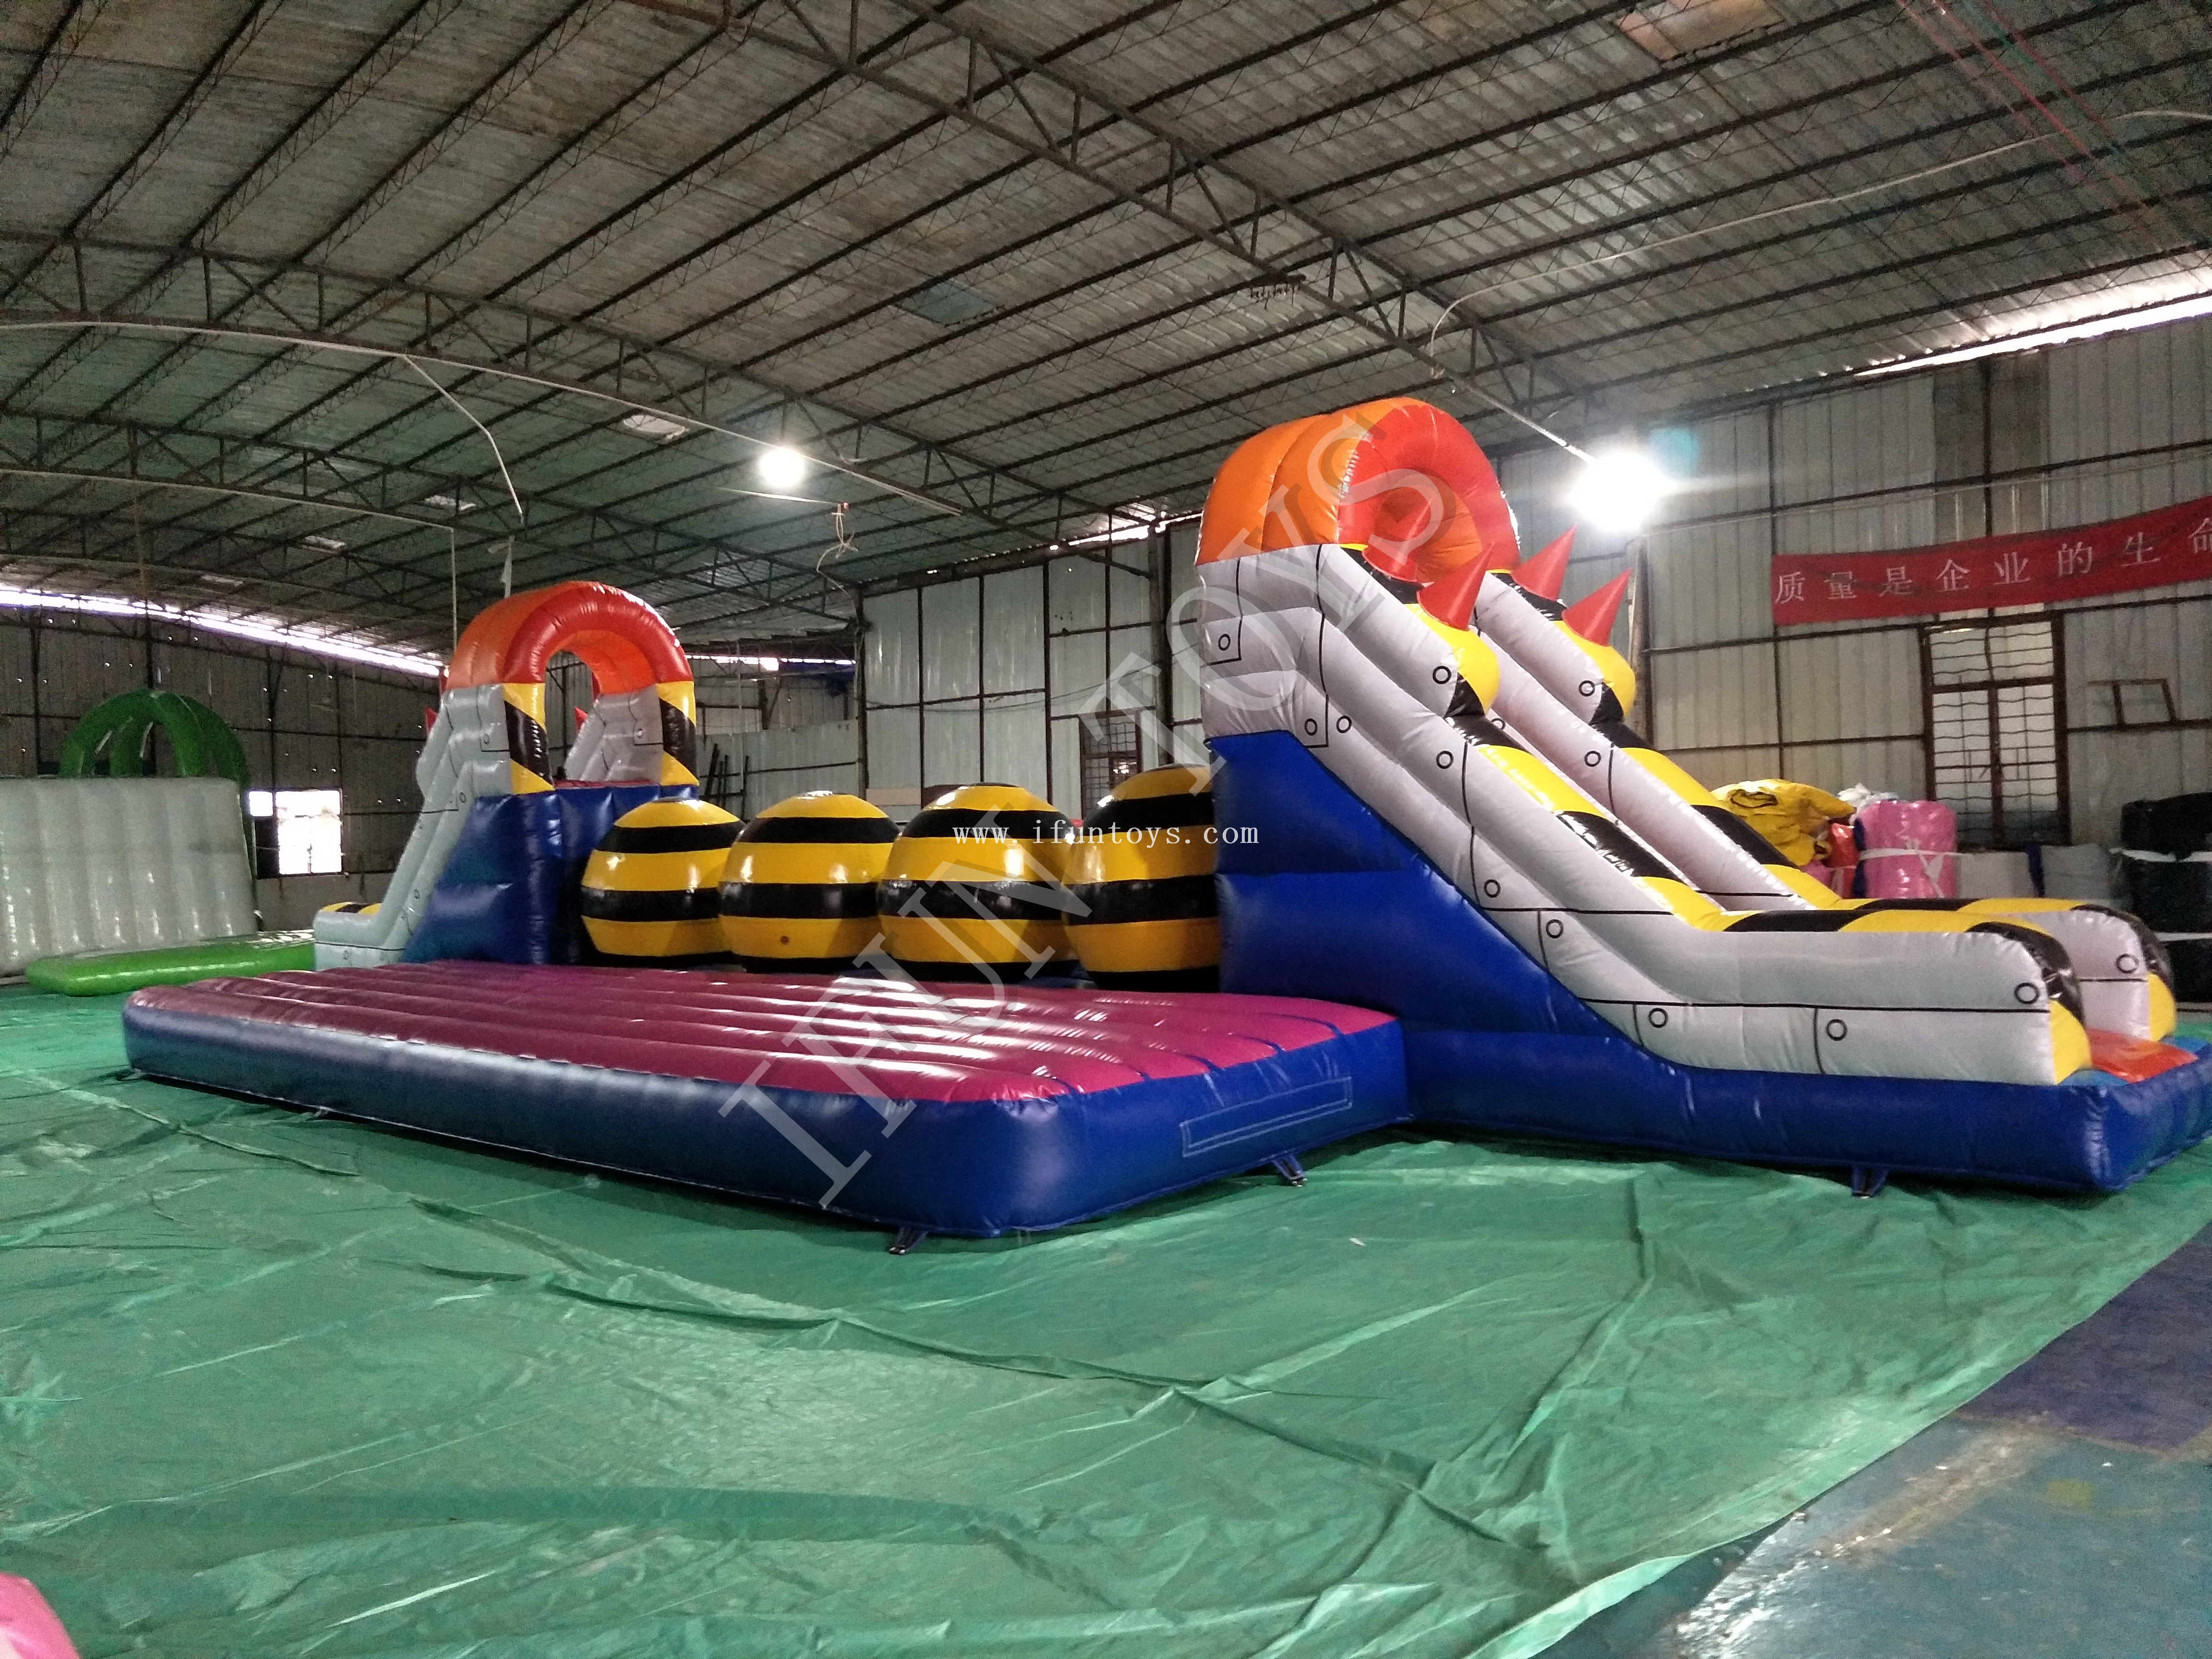 Interactive Inflatable Big Baller Obstacle / Leaps N Bounds Wipeout Challenge Jumping Game